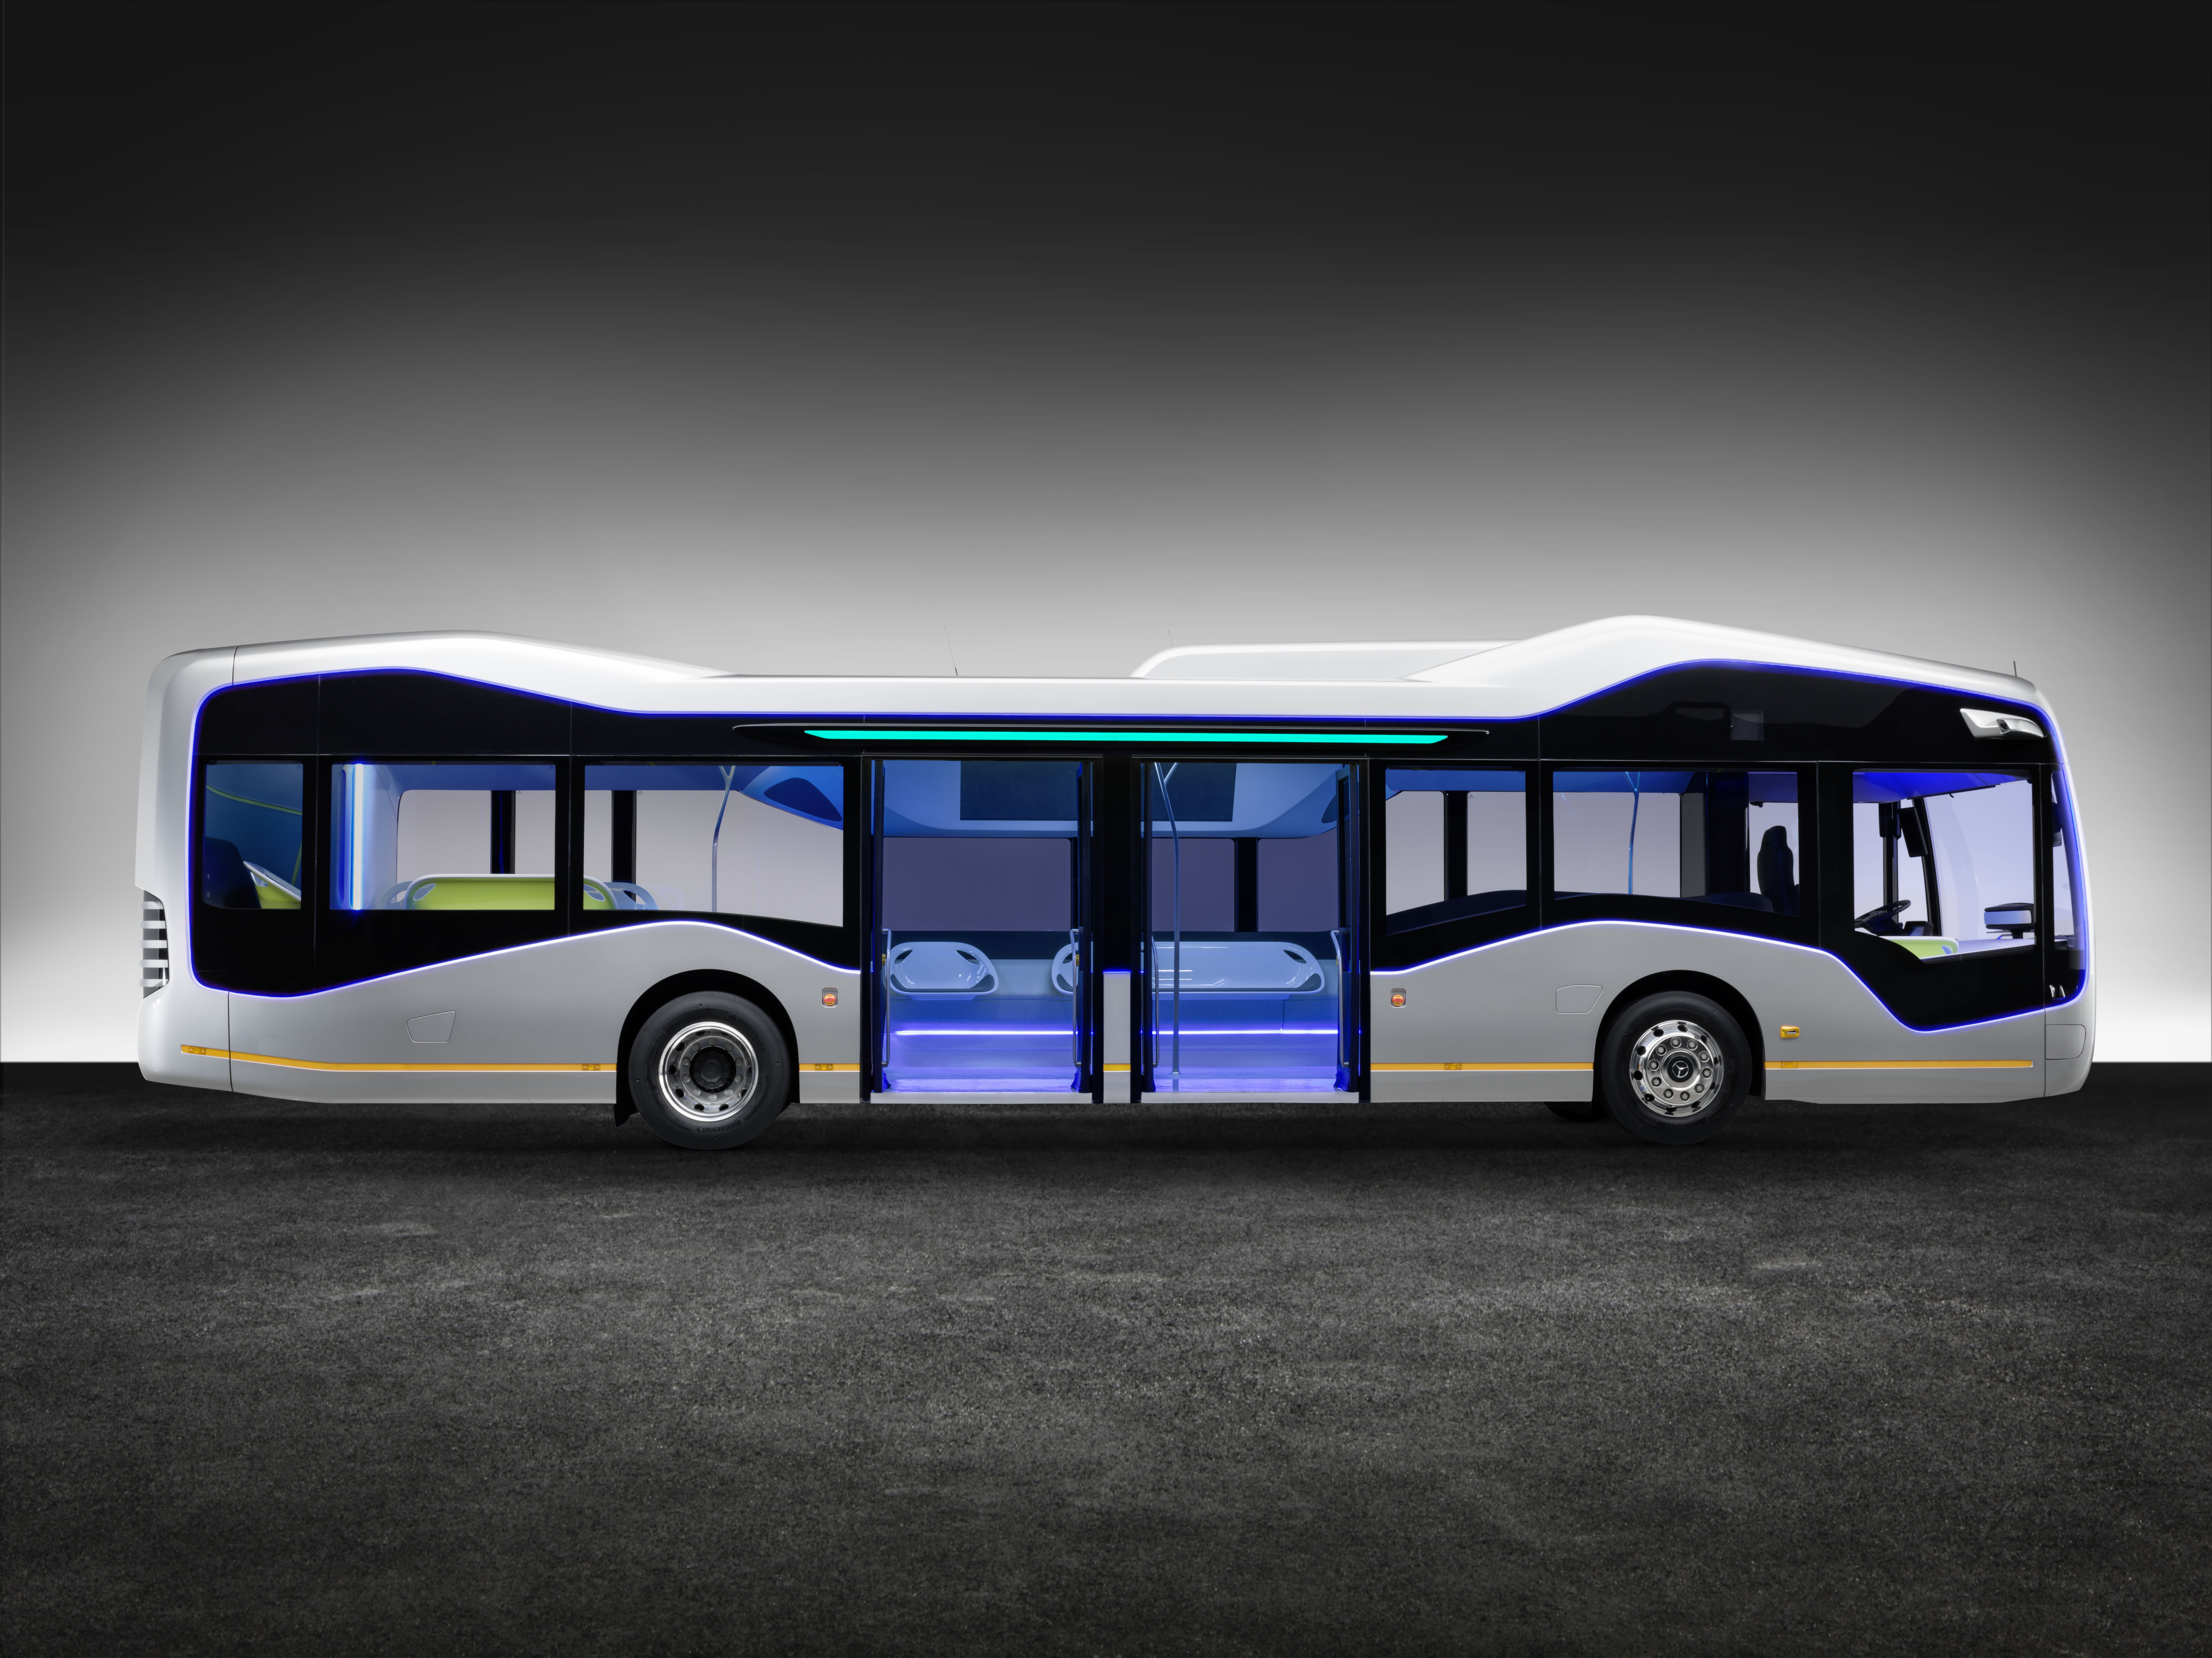 16C632 05 - IAA Preview 2016 Daimler Buses; Mercedes-Benz Future Bus mit Cit